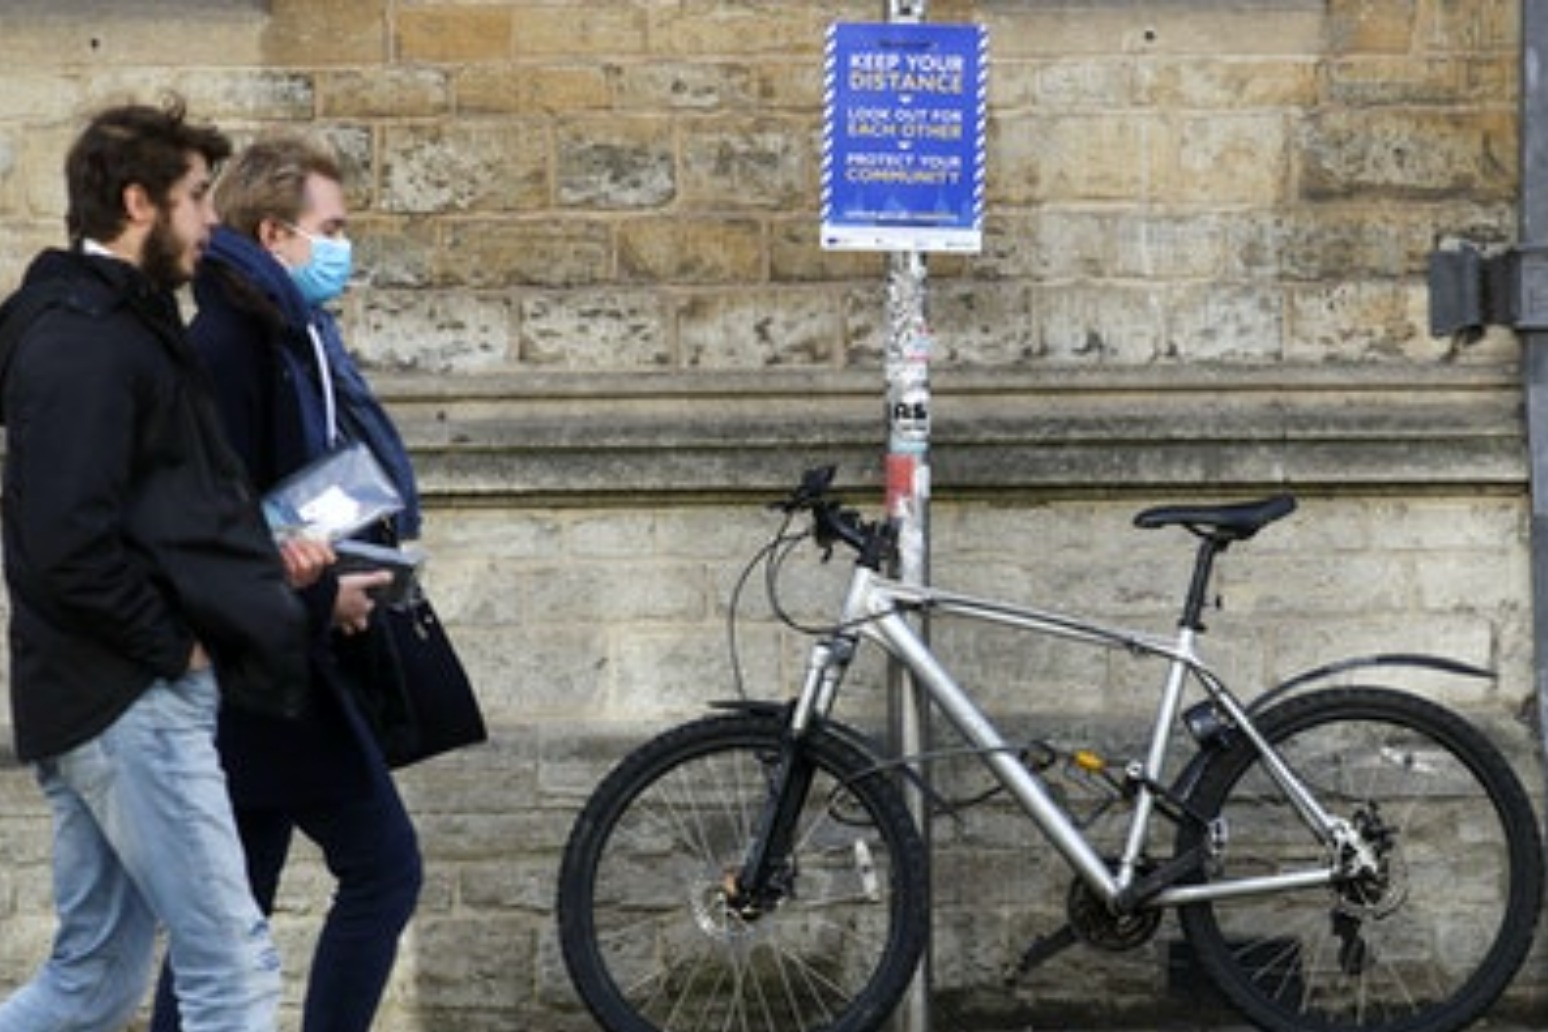 University students to be allowed to travel home in December in Christmas boost